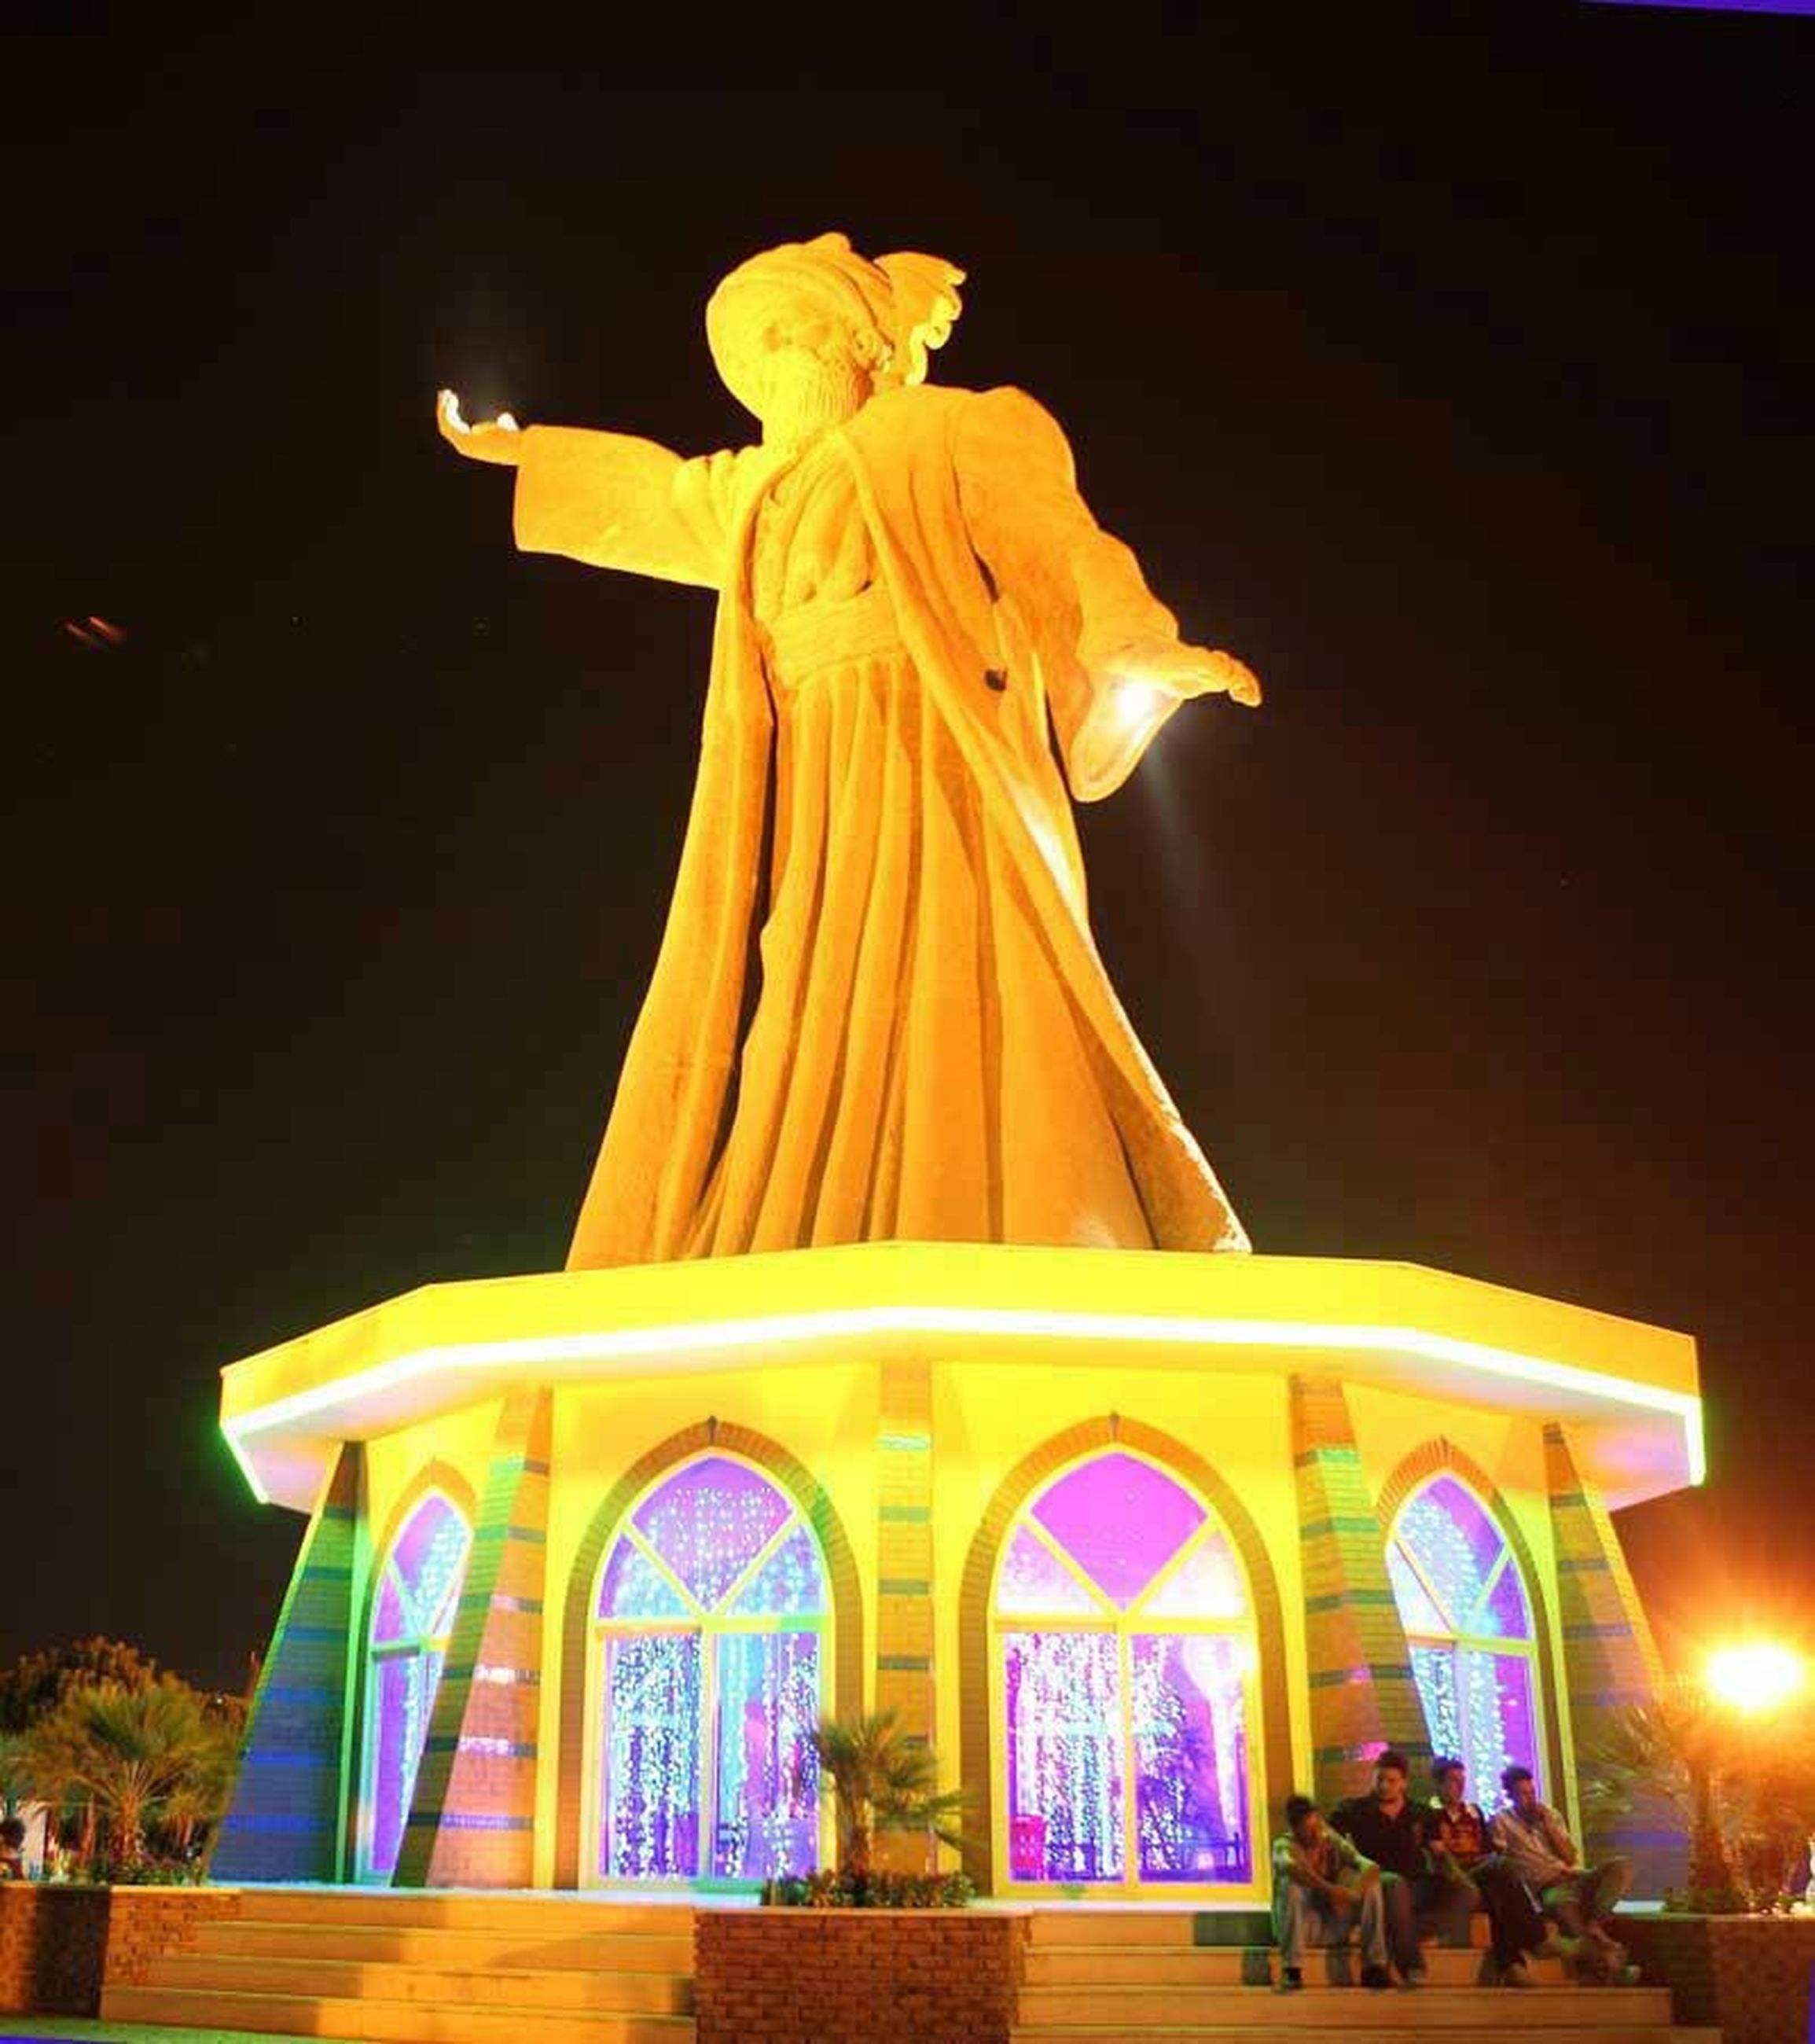 night, human representation, art and craft, statue, art, sculpture, illuminated, creativity, religion, low angle view, spirituality, animal representation, place of worship, built structure, carving - craft product, no people, clear sky